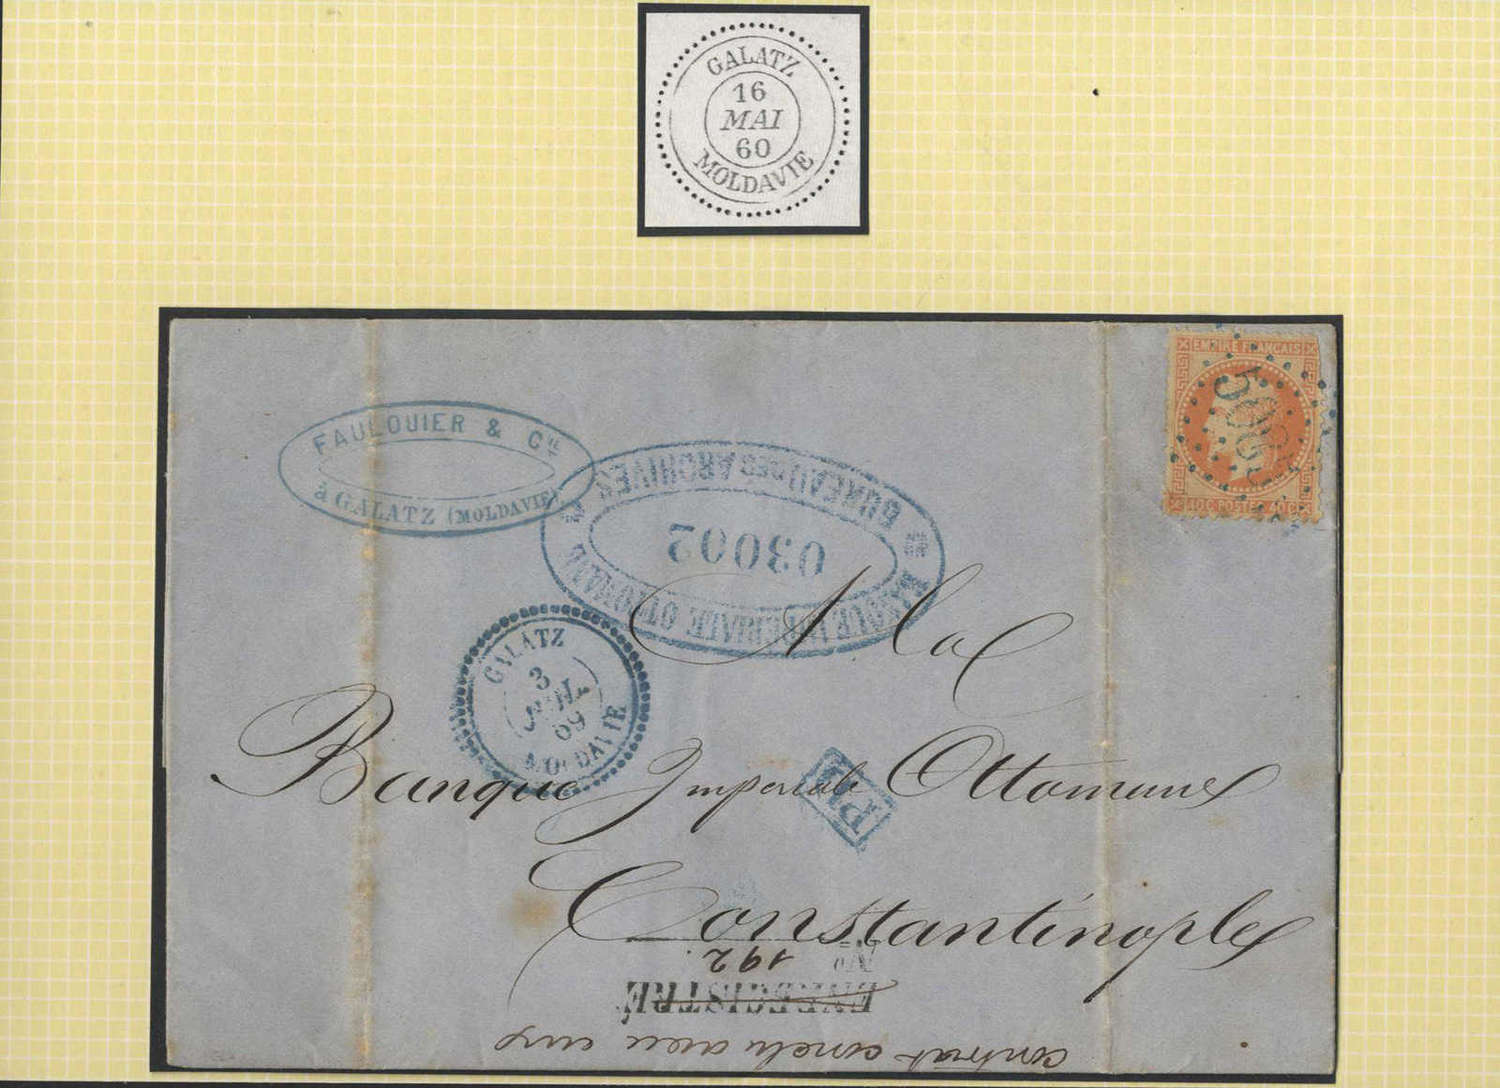 Lot 1212 - europa Rumänien Französische Levante Postämter -  HA HARMERS AUCTIONS S.A. Treasure Hunt 3